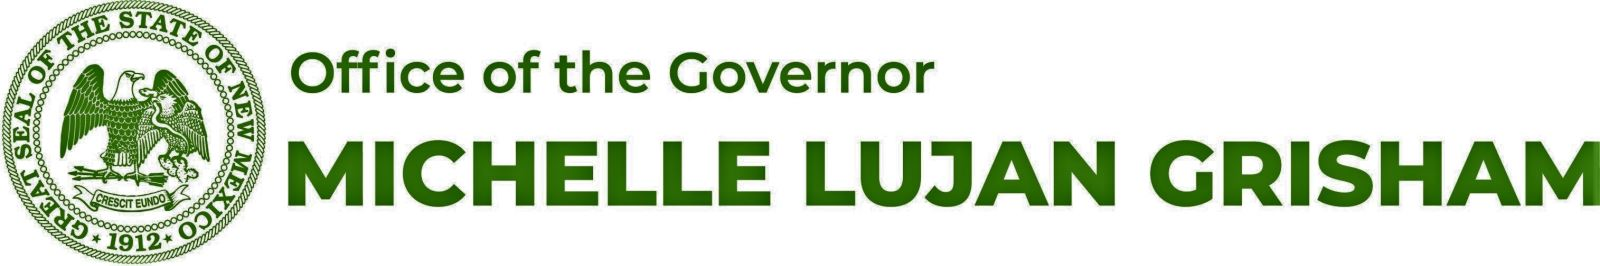 Office of the Governor Michelle Lujan Grisham logo